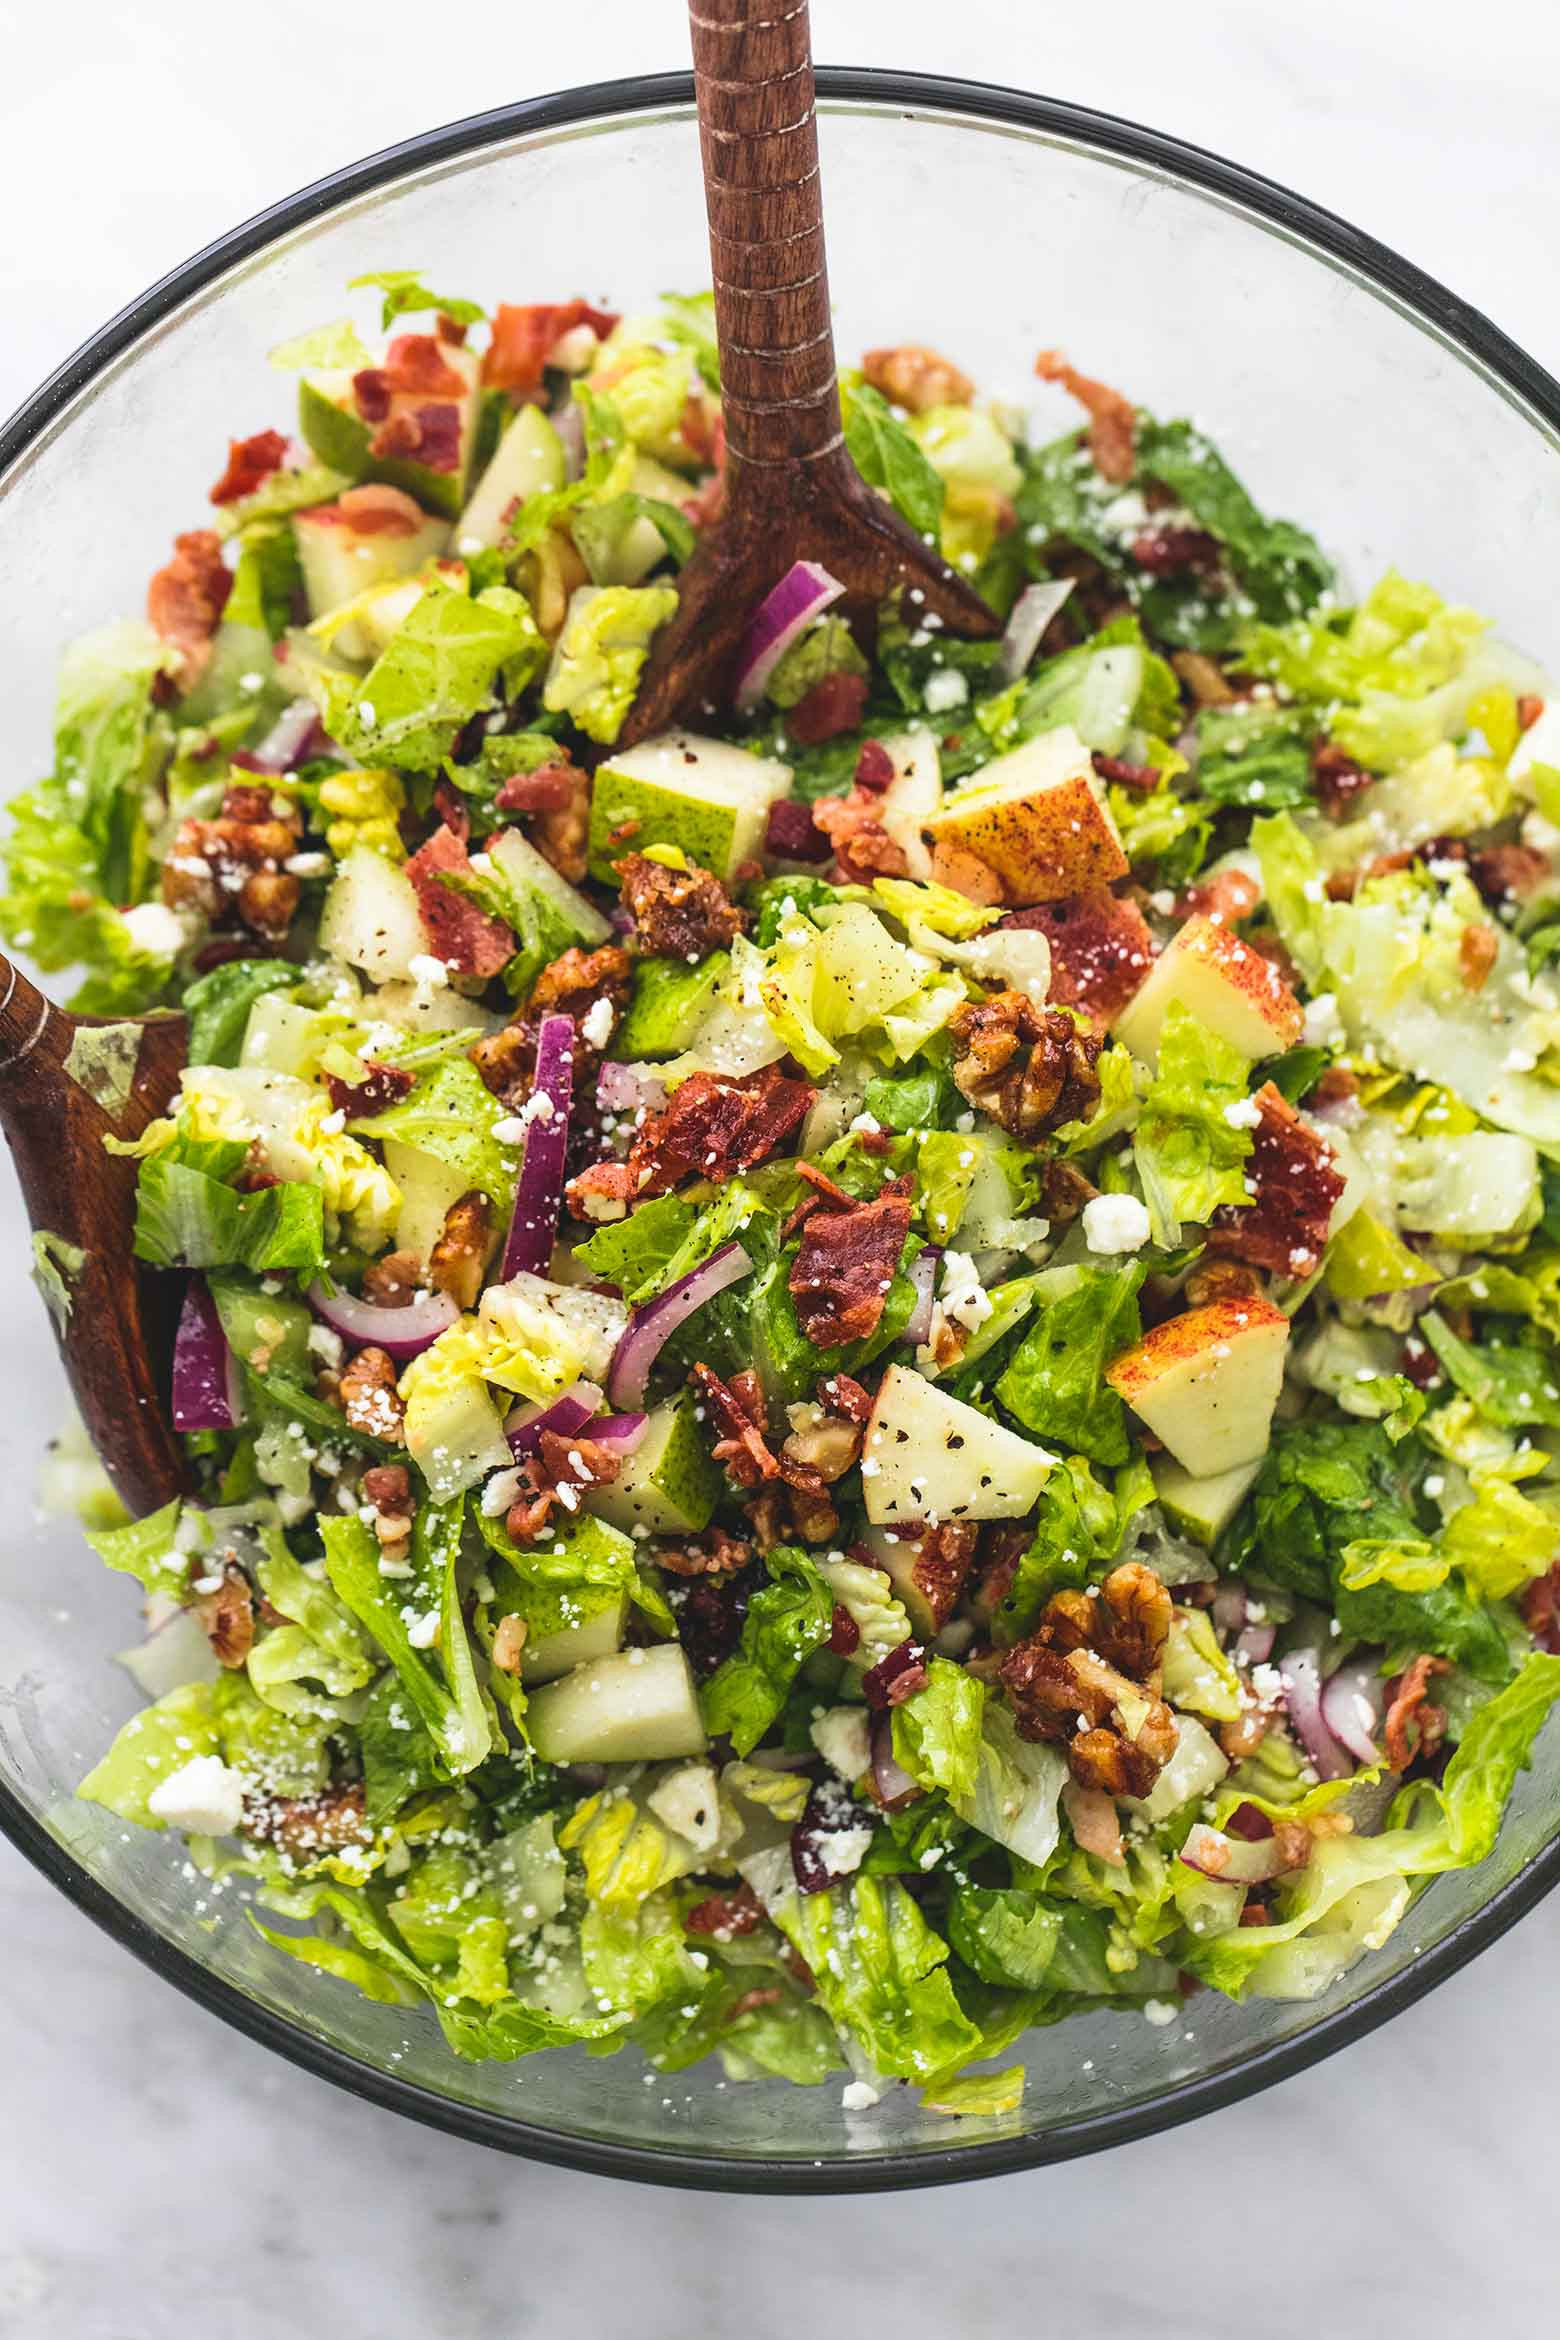 Fall Salad Dressings  Chopped Autumn Salad with Apple Cider Dressing